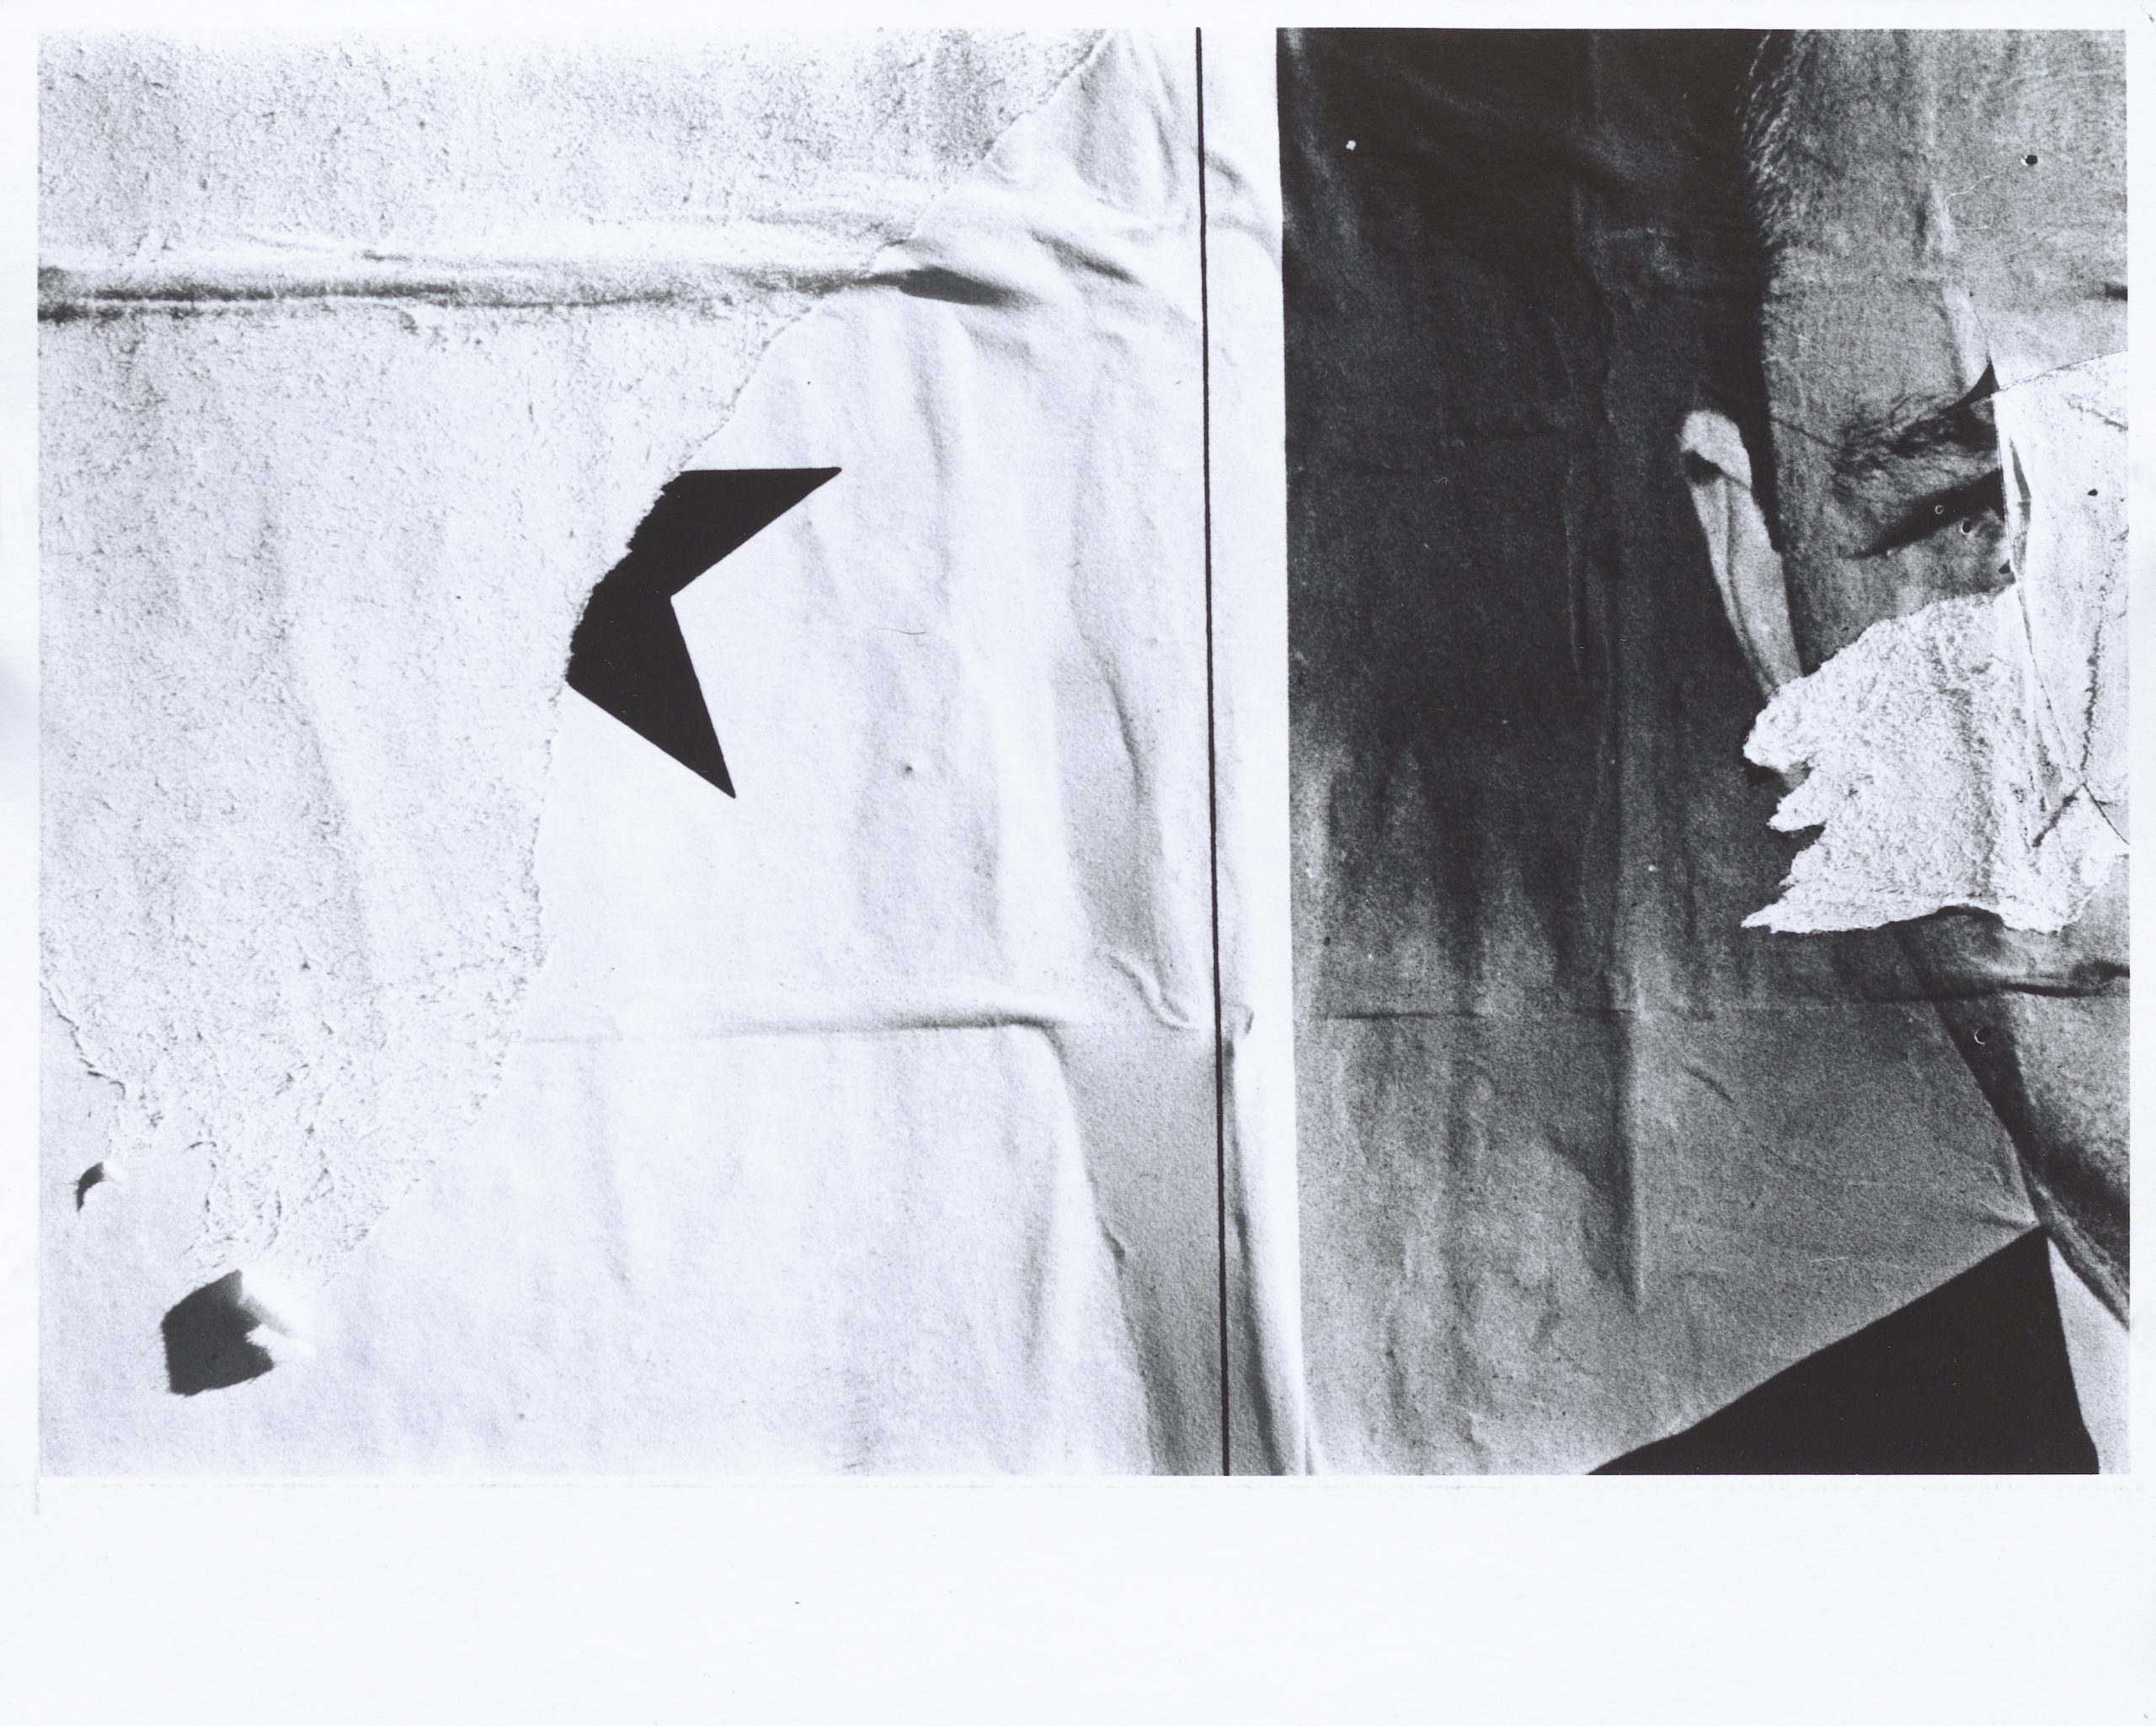 Black and white photograph of layered torn signs featuring portions of a star and a man's face separated by a vertical line.